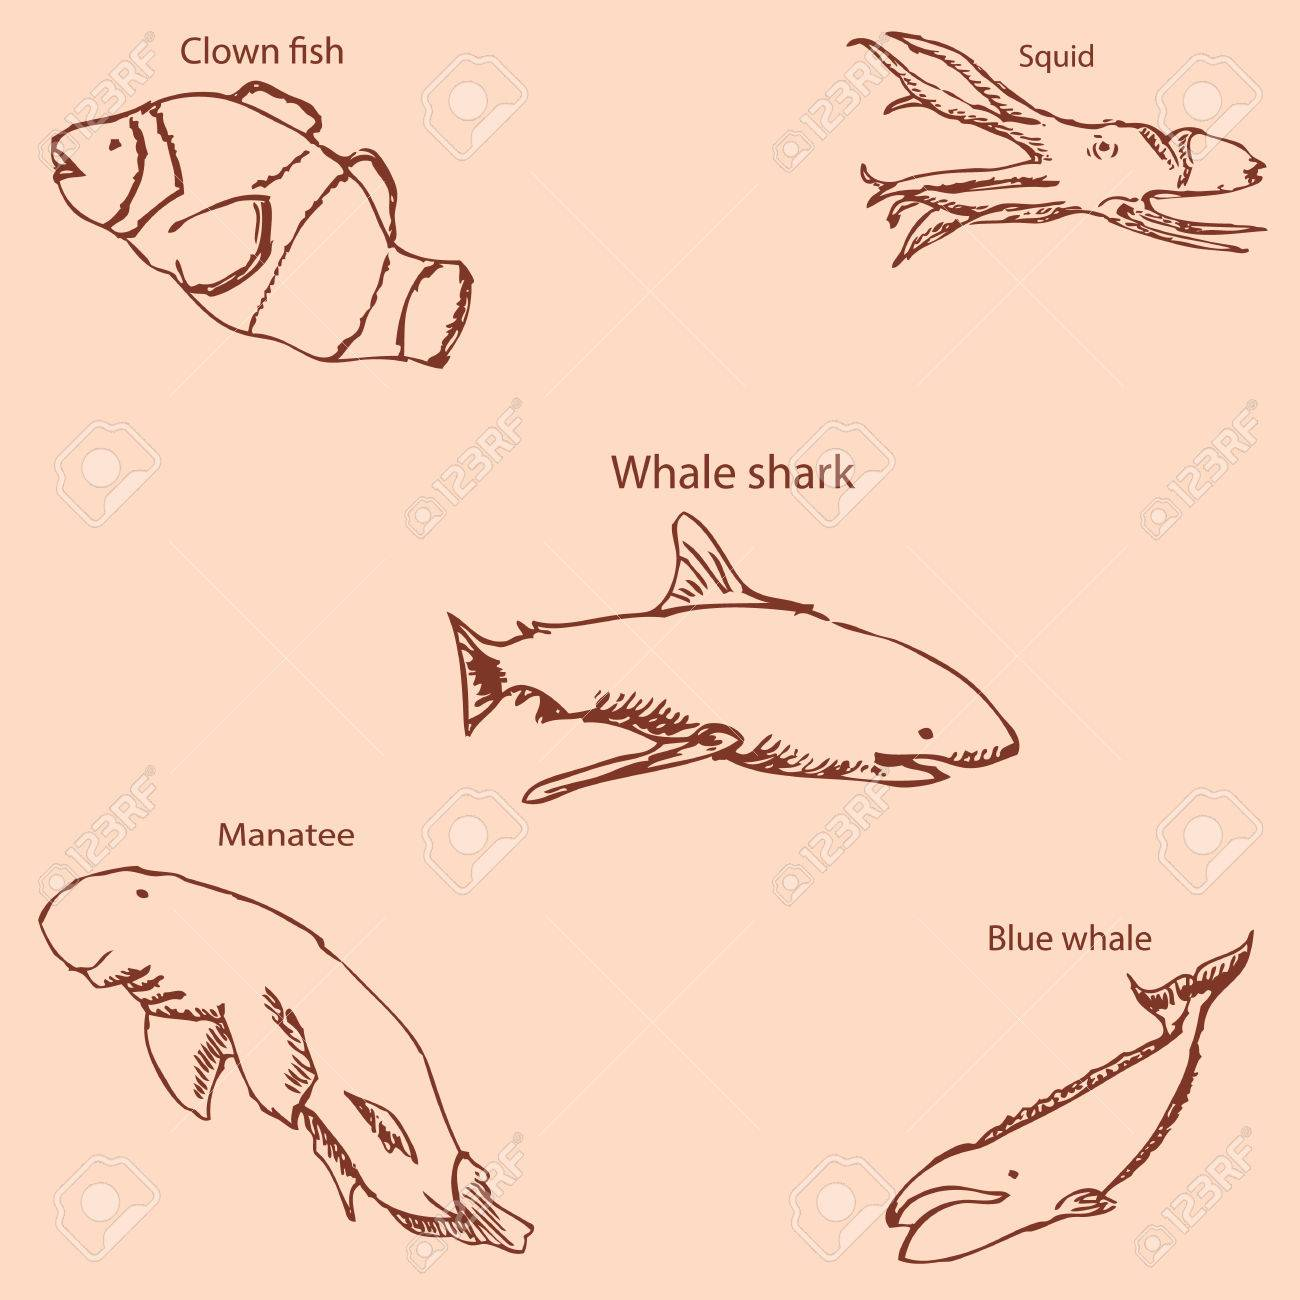 Marine inhabitants with names pencil sketch by hand vintage colors vector image stock